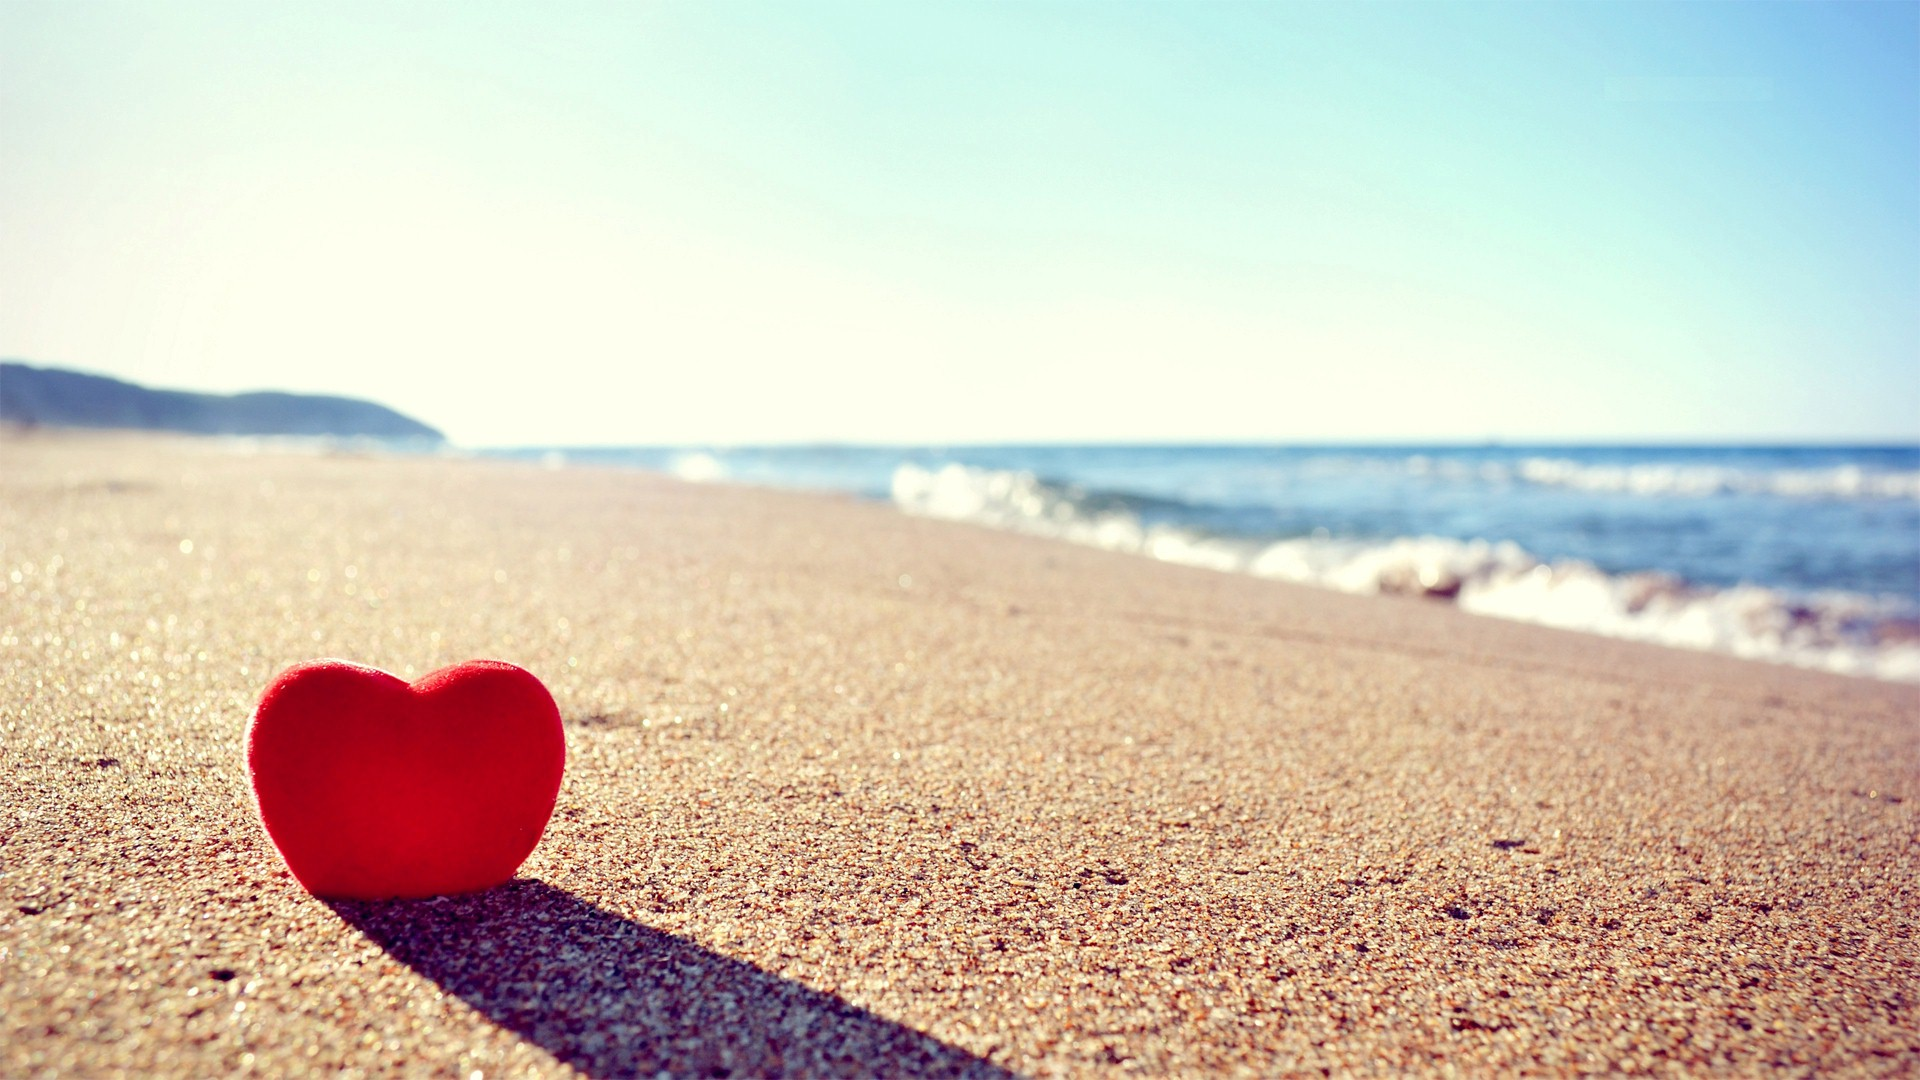 Download Love Heart On Beach Facebook Cover - FB Covers Hub